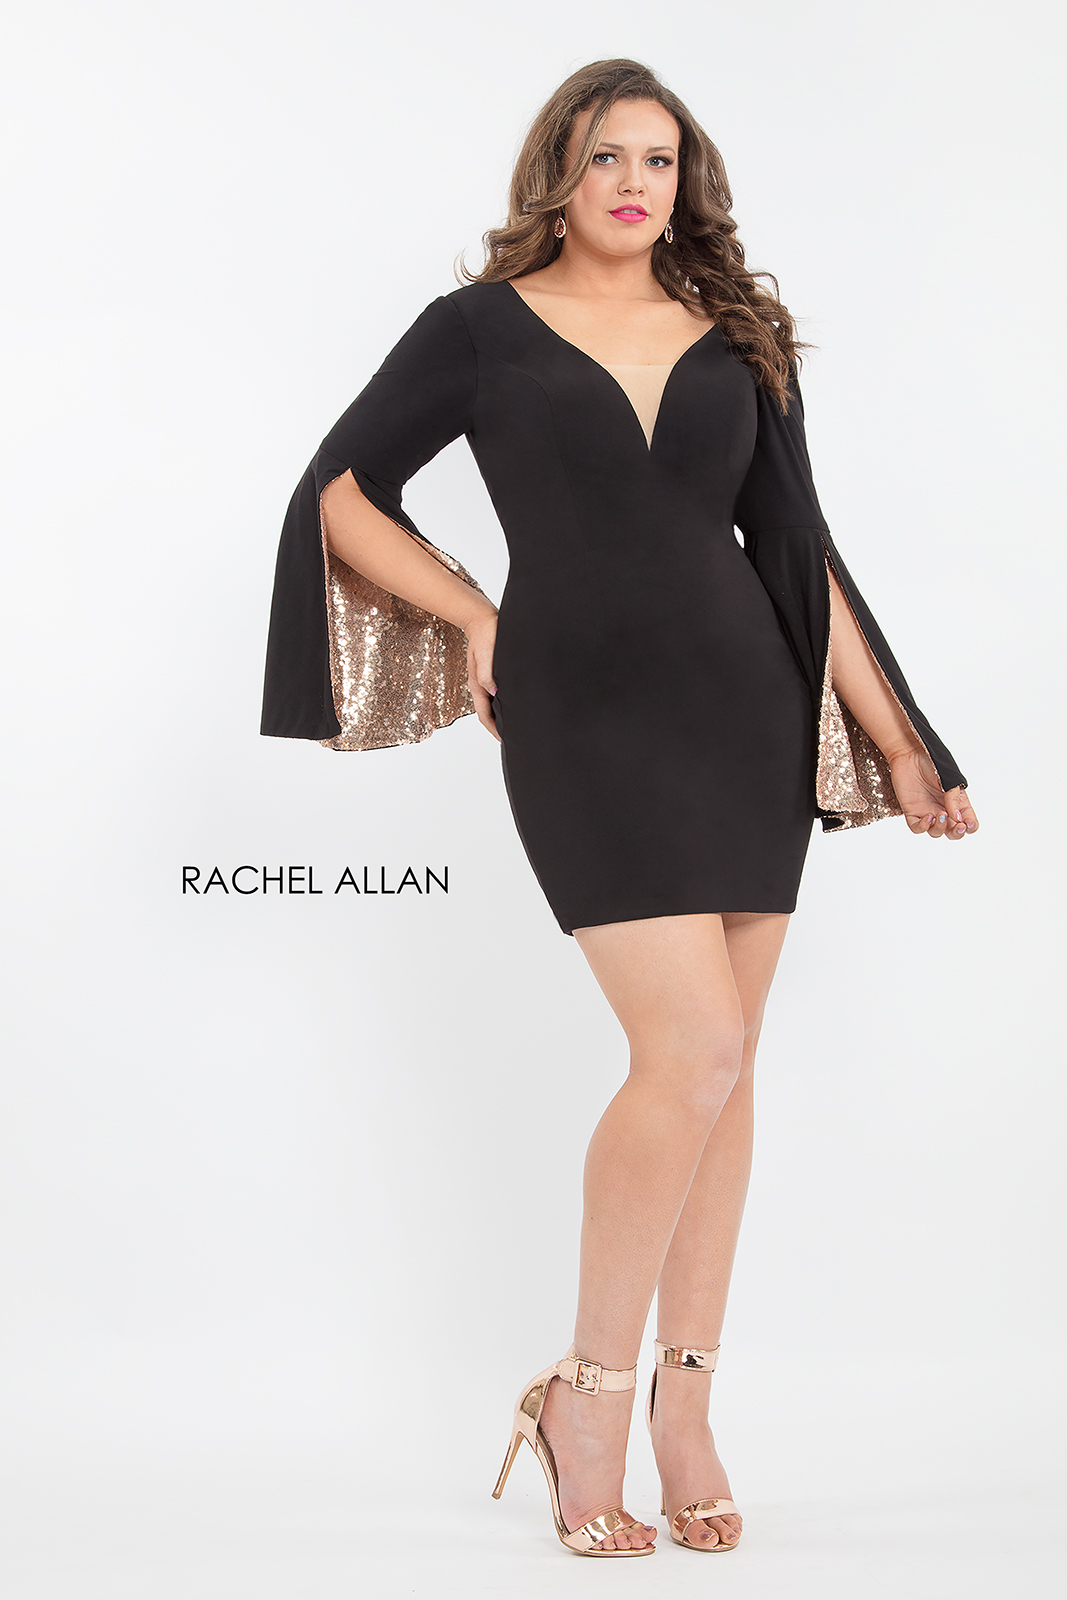 V-Neck Fitted Mini Homecoming Curves in Black Color